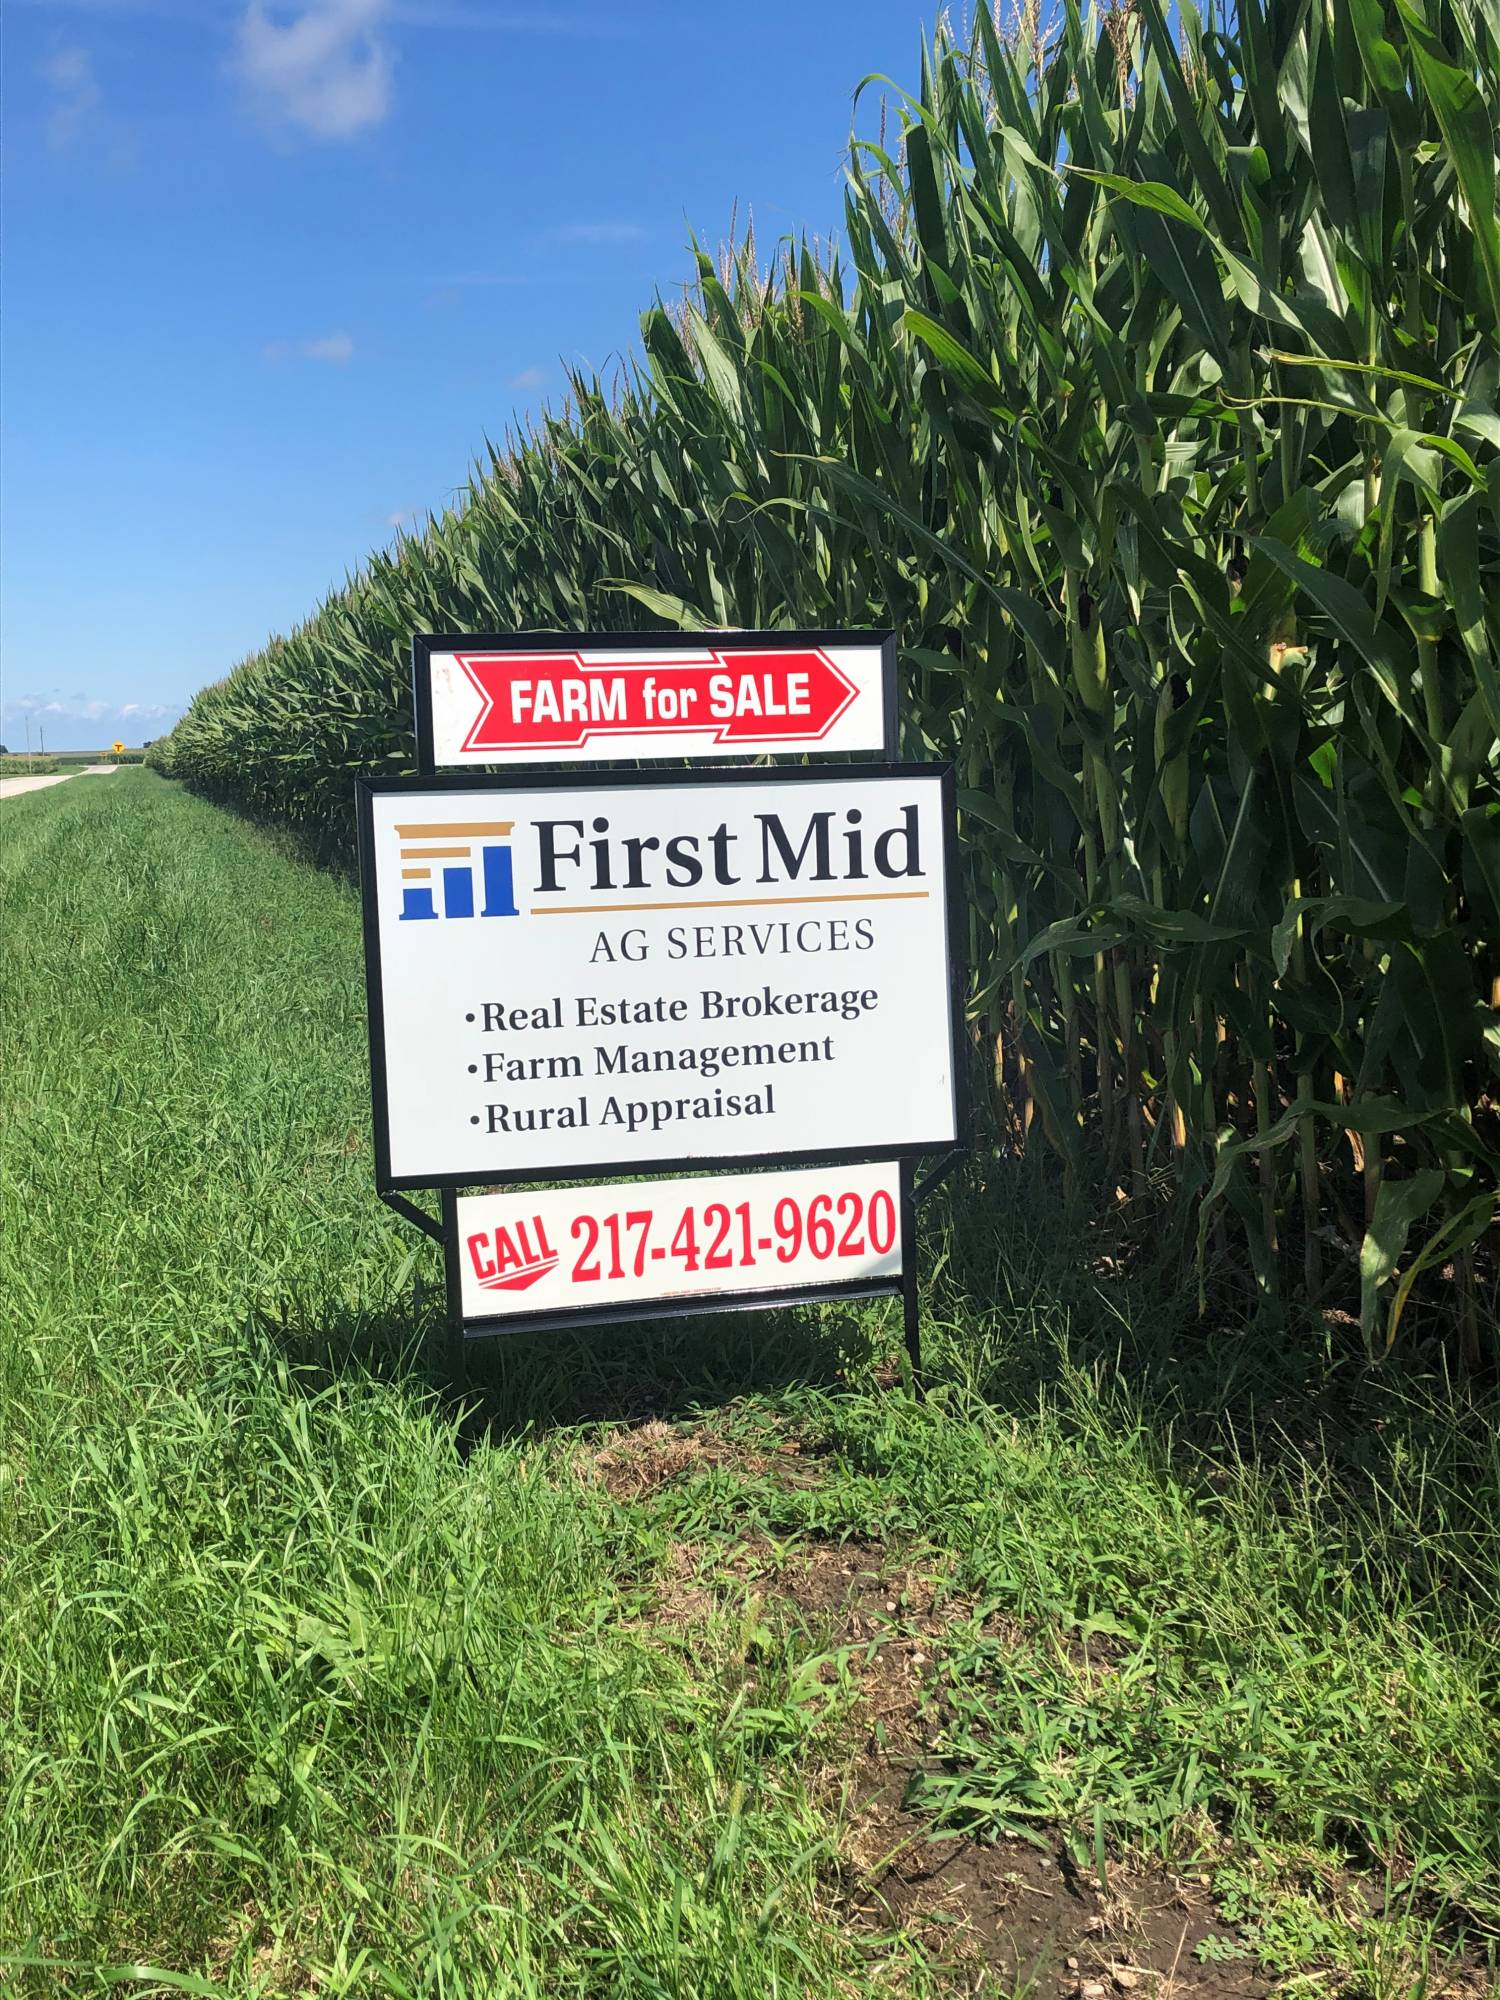 Farms for Sale - First Mid Agricultural Services